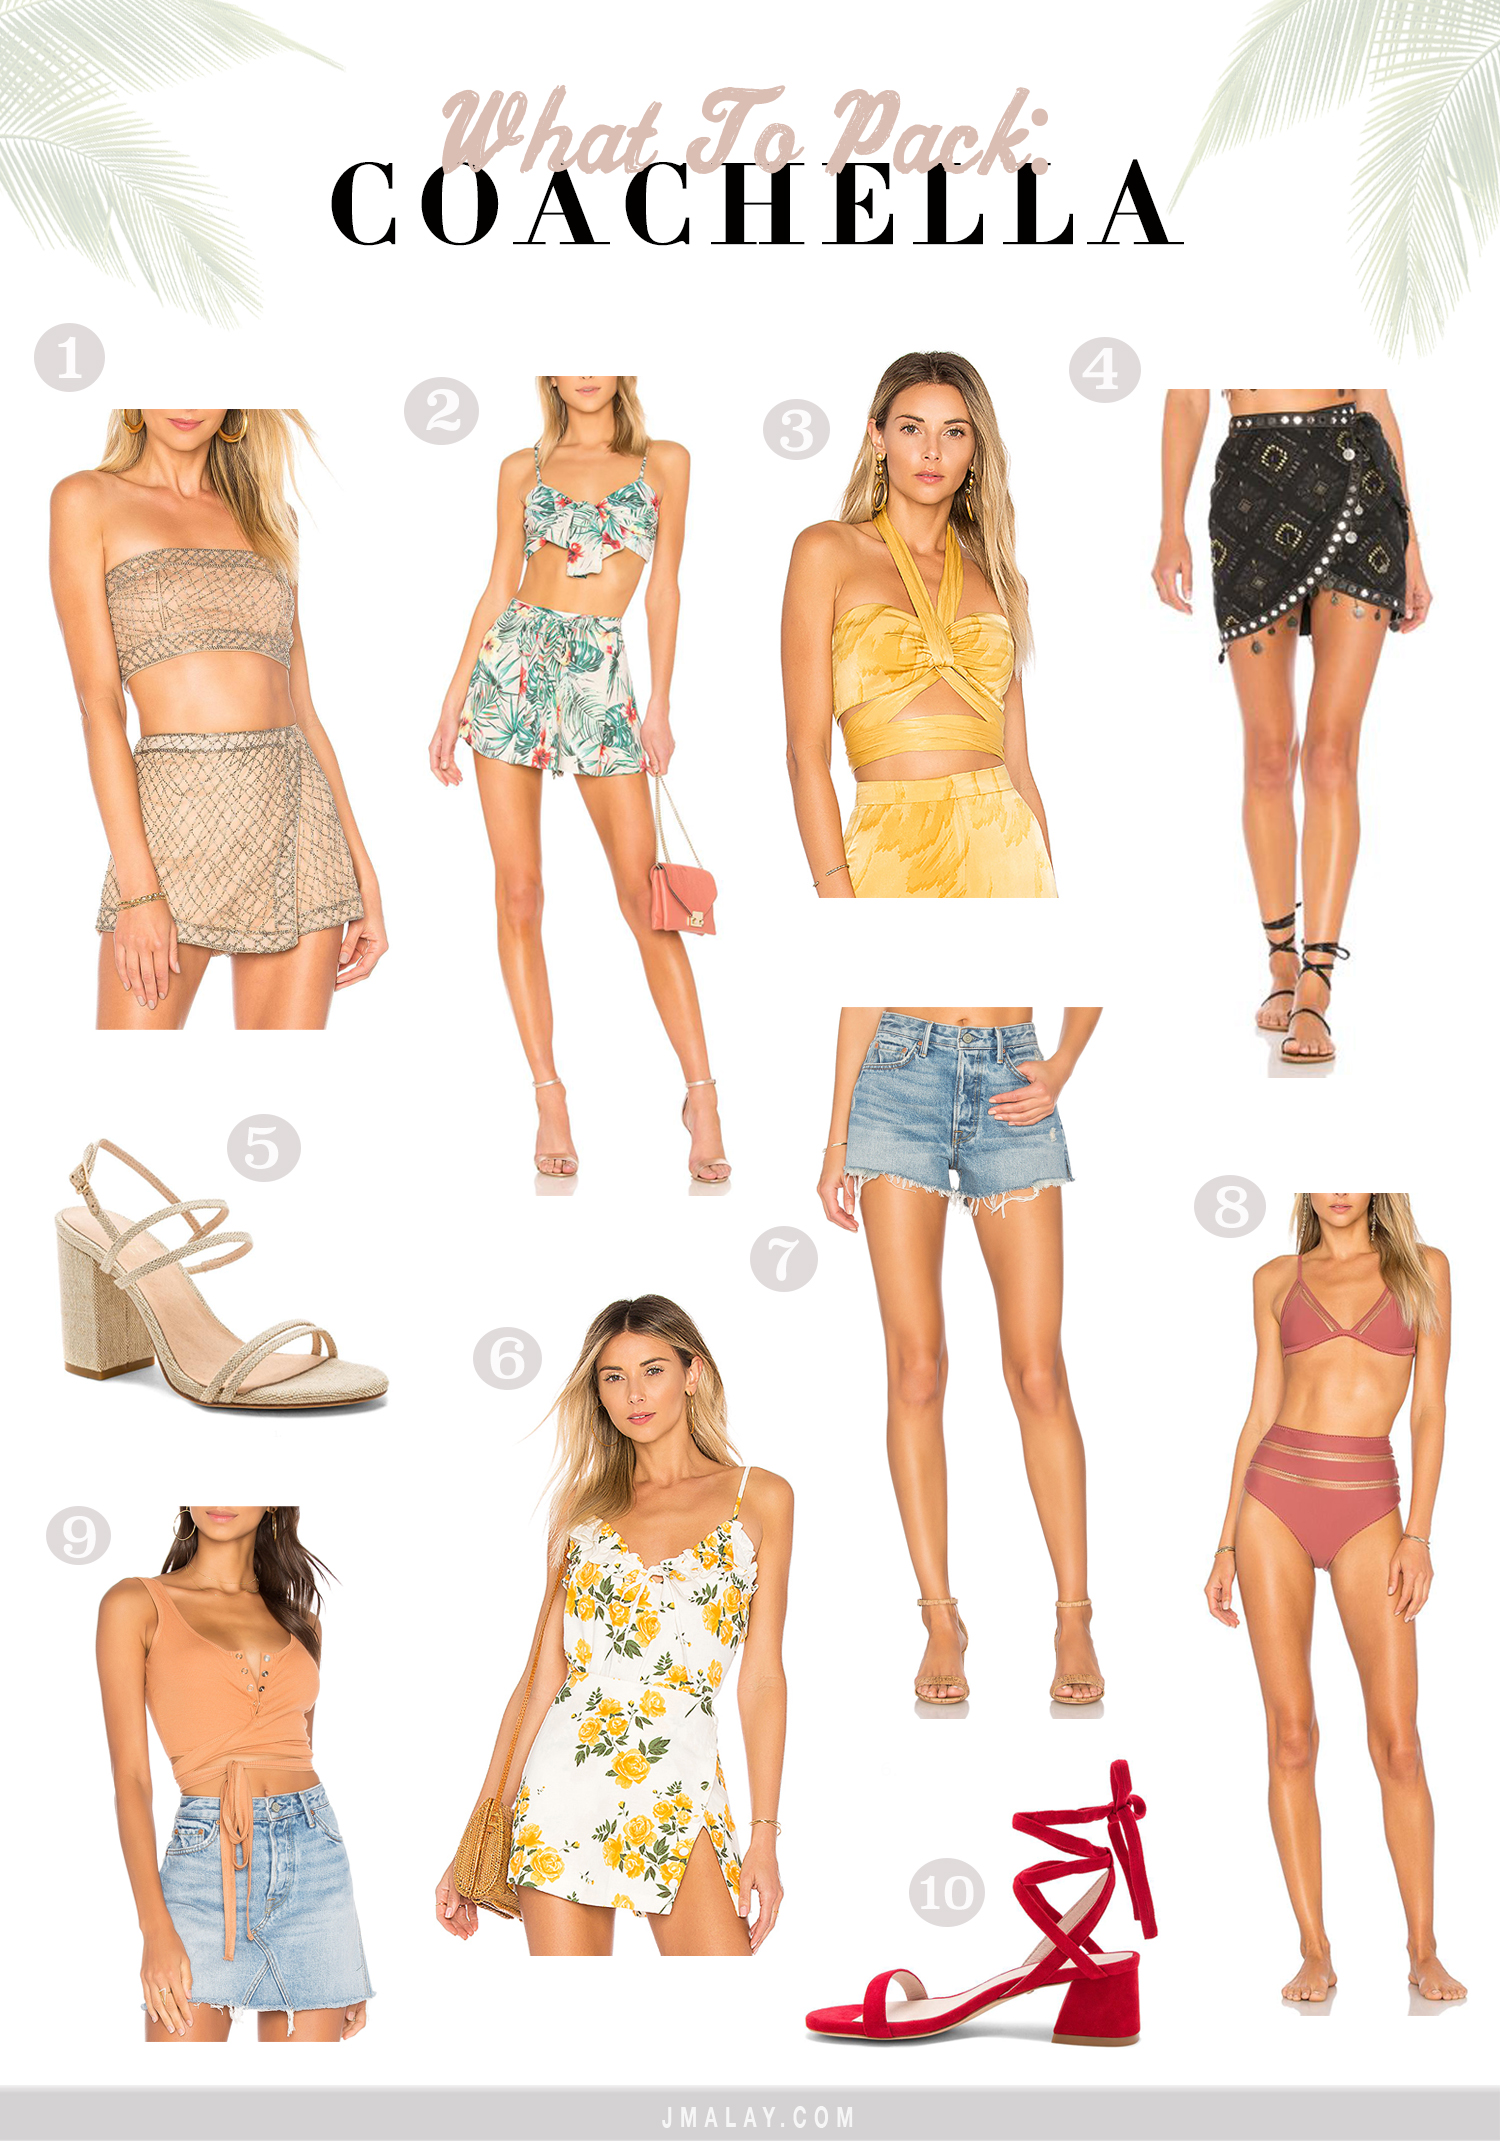 best coachella outfits ideas inspiration shop guide revolve